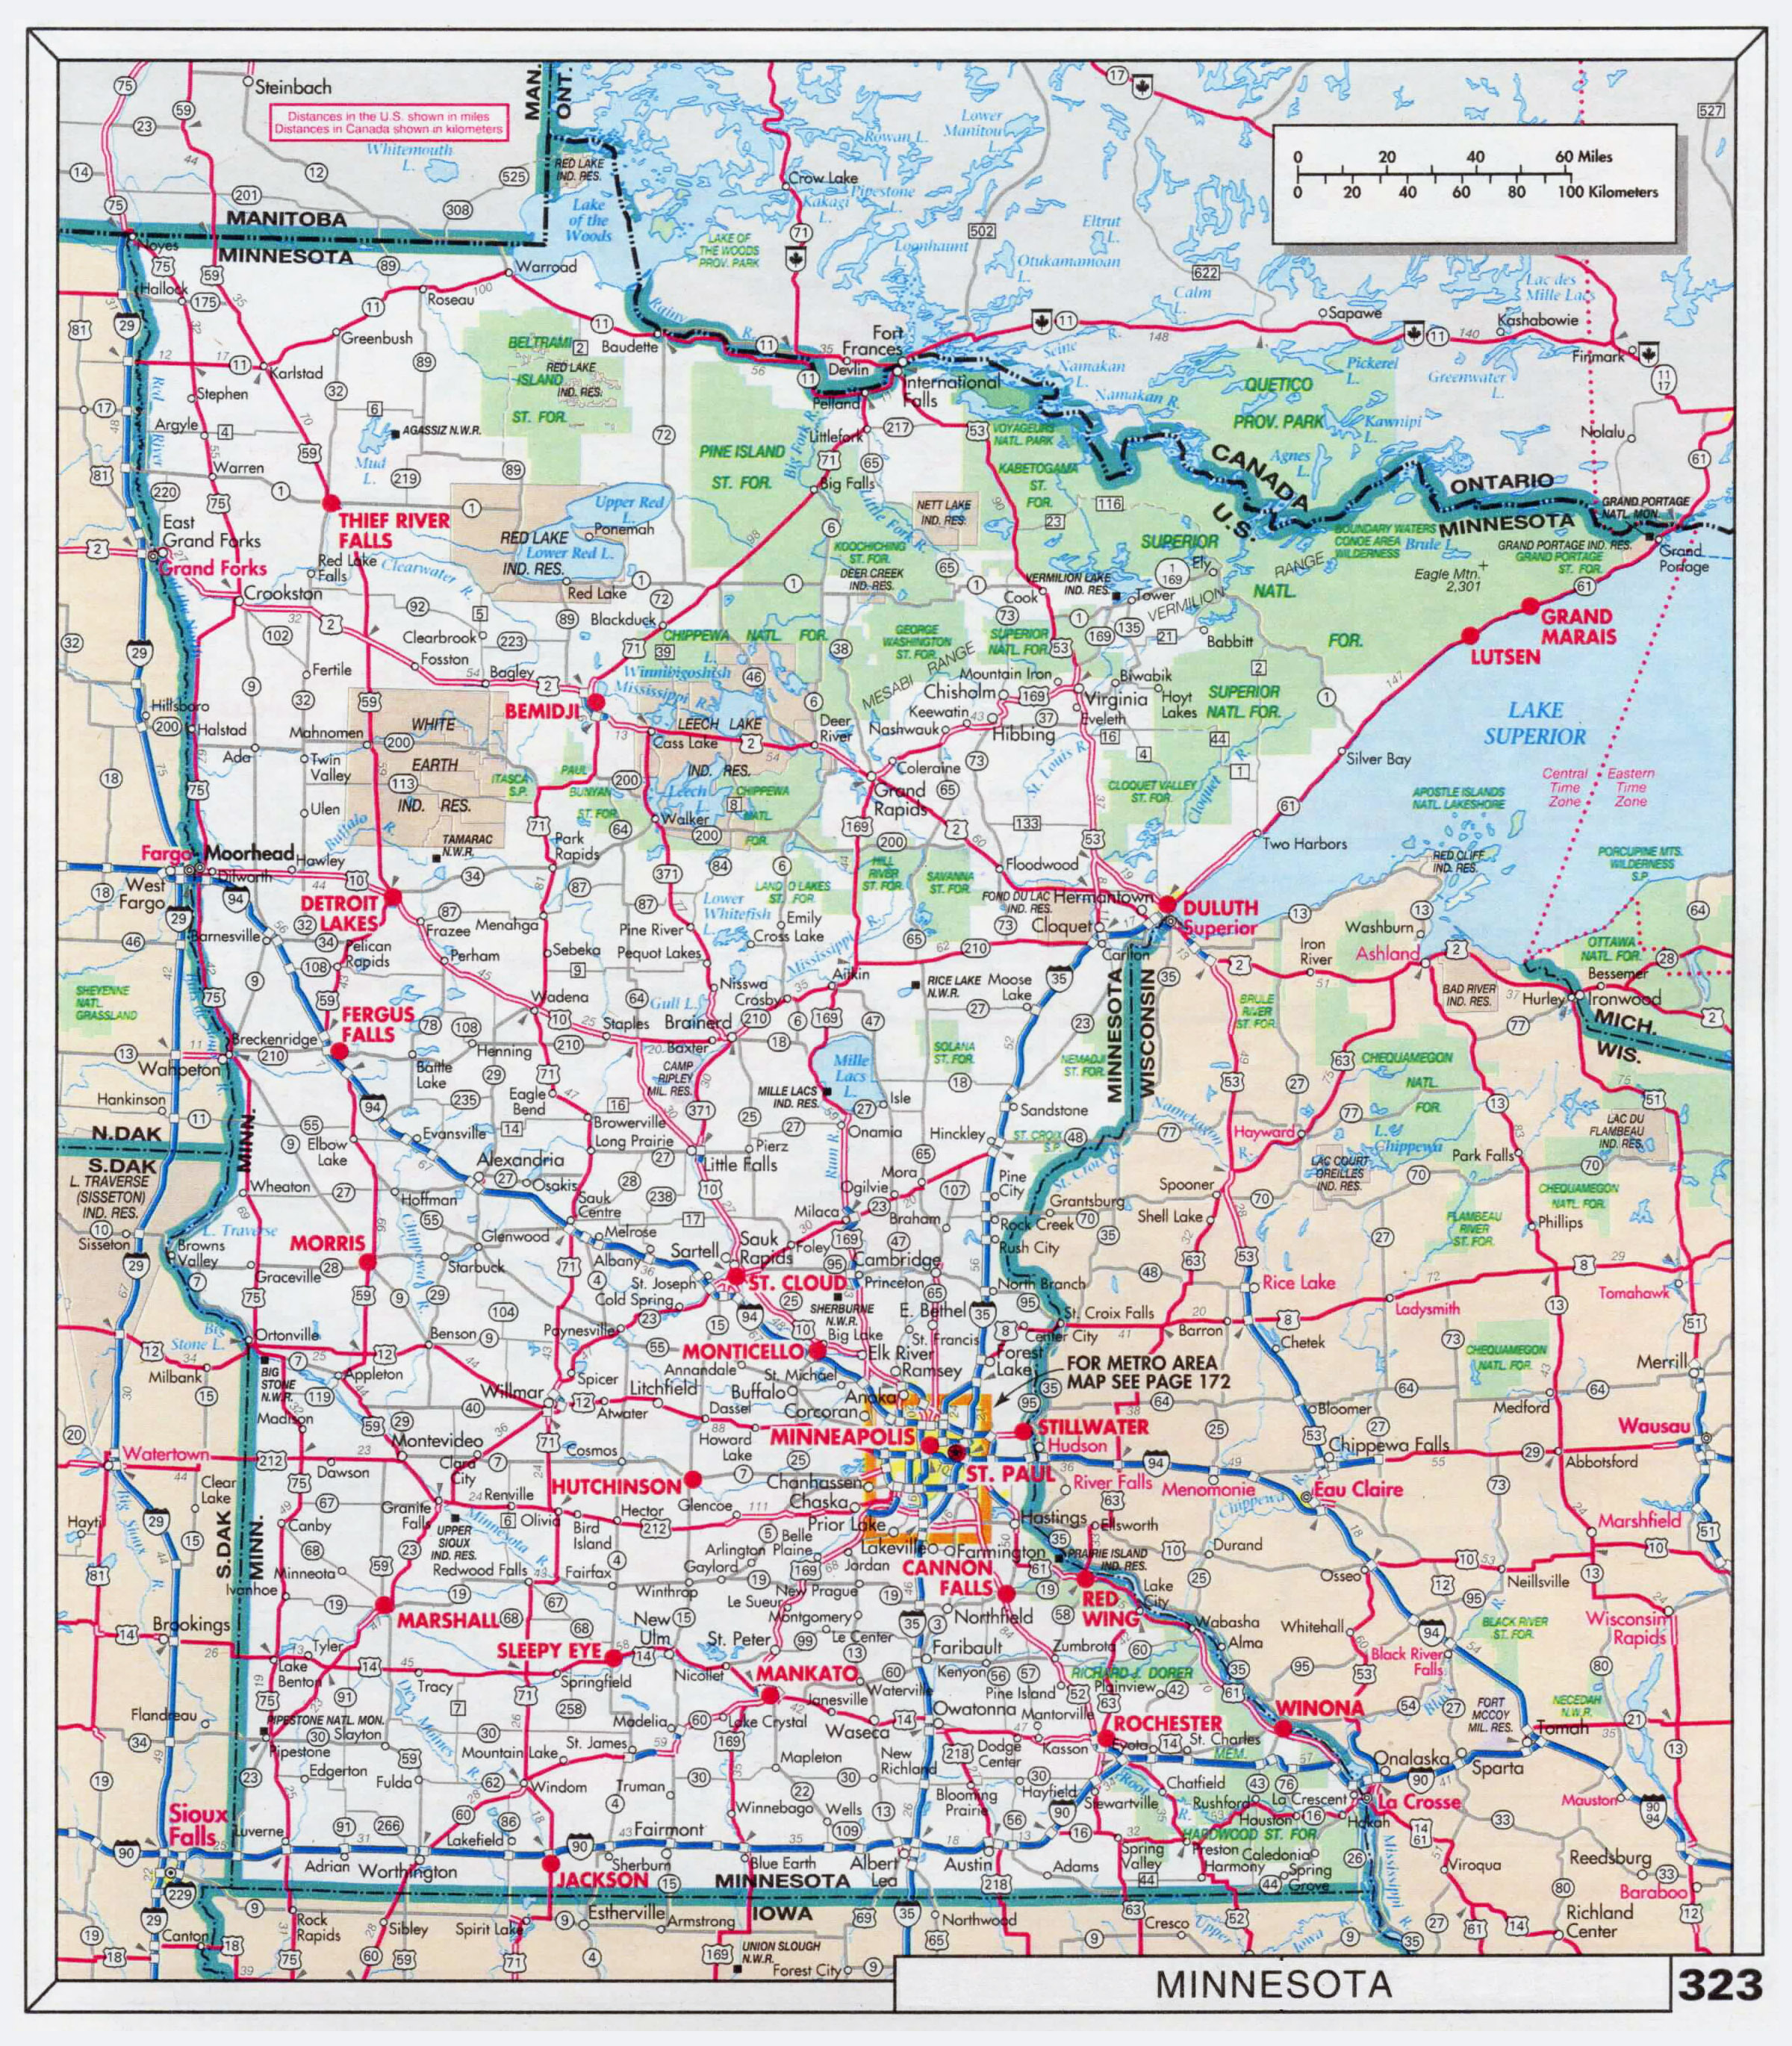 Large Scale Roads And Highways Map Of Minnesota State With - State of minnesota map